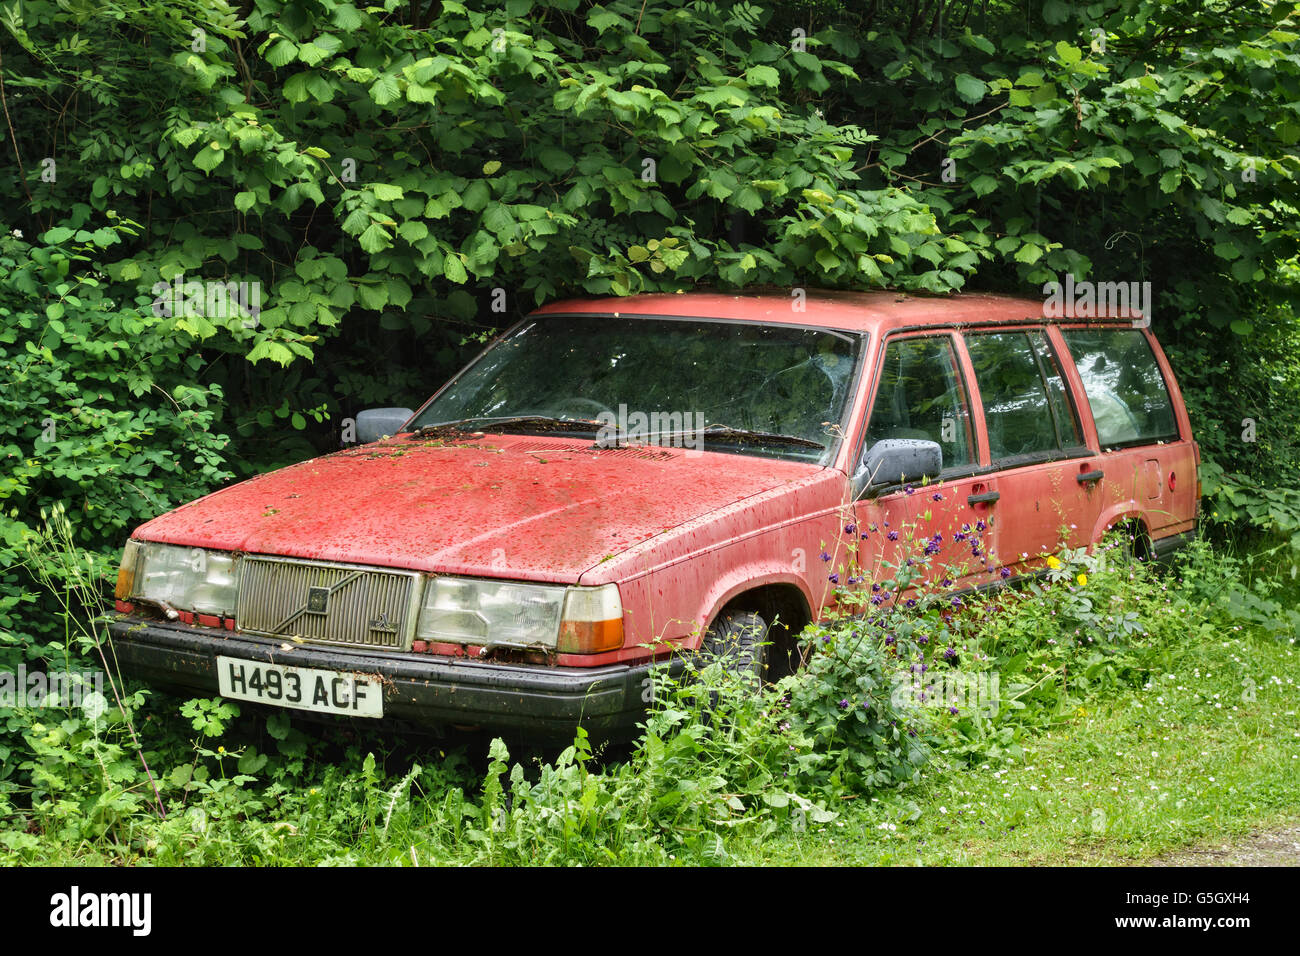 Old Volvo Car Stock Photos & Old Volvo Car Stock Images - Alamy